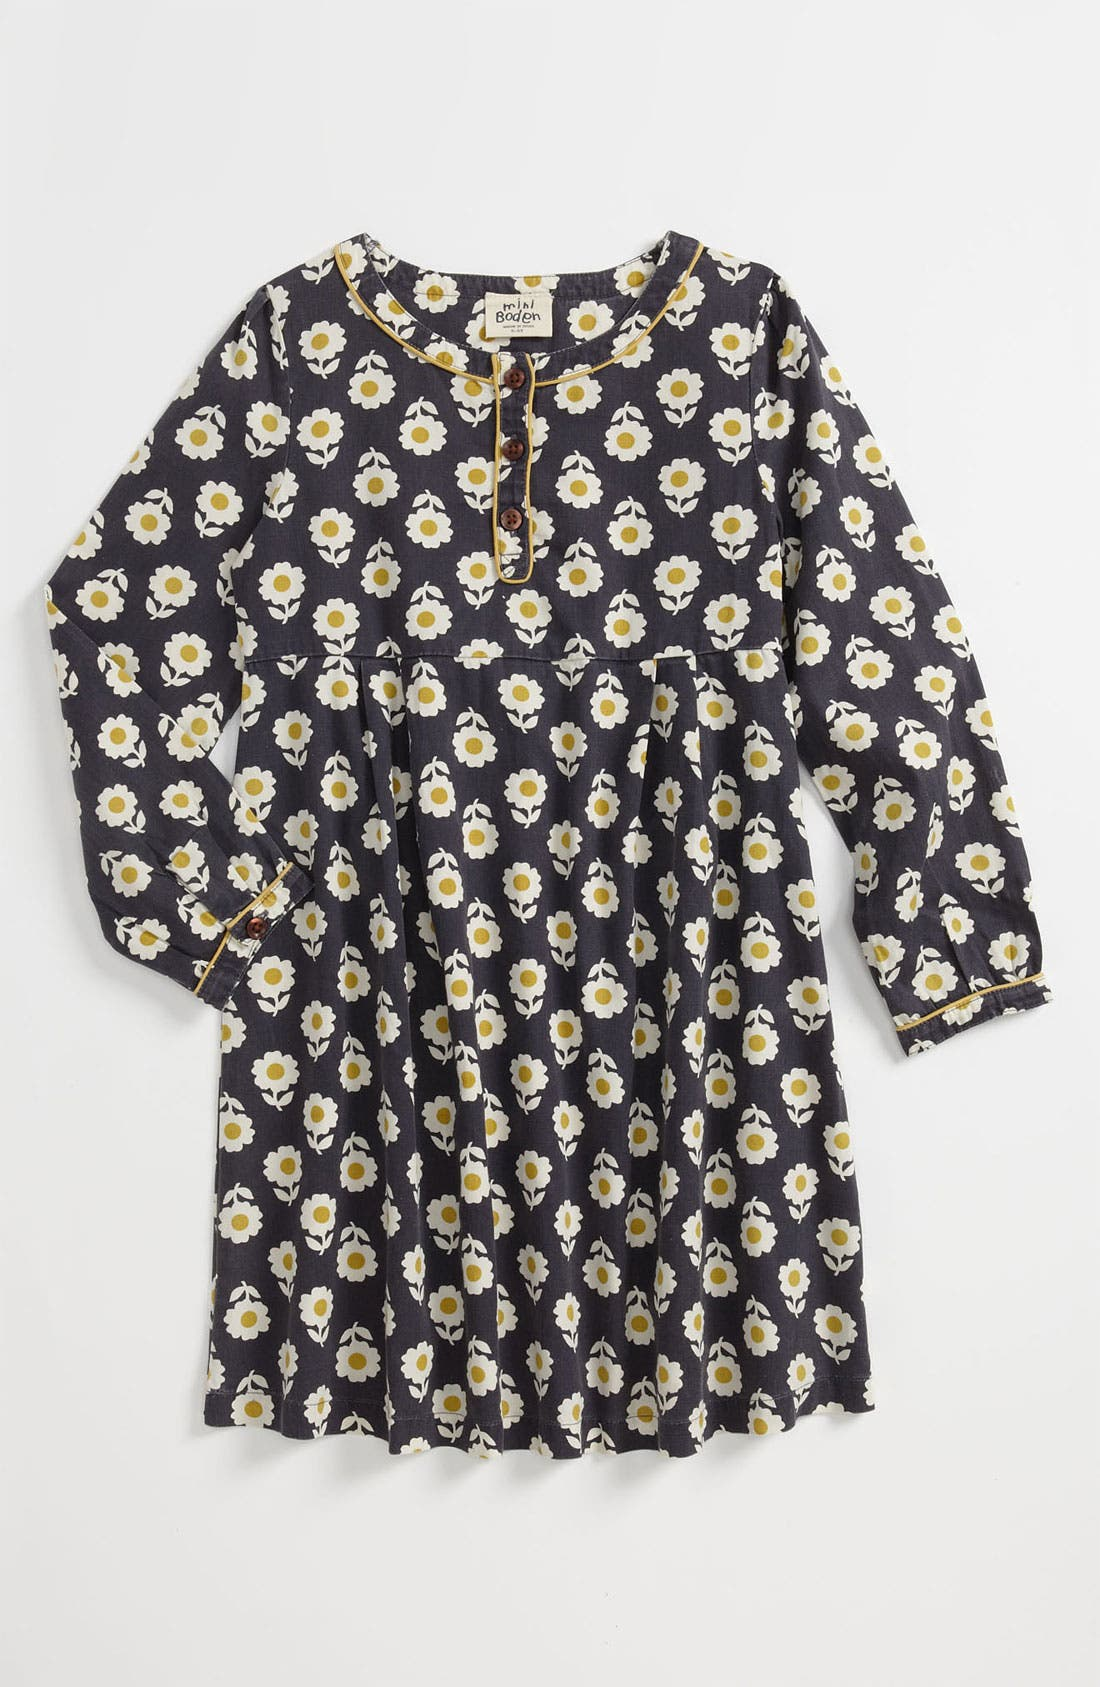 Alternate Image 1 Selected - Mini Boden 'Easy' Print Dress (Little Girls & Big Girls)